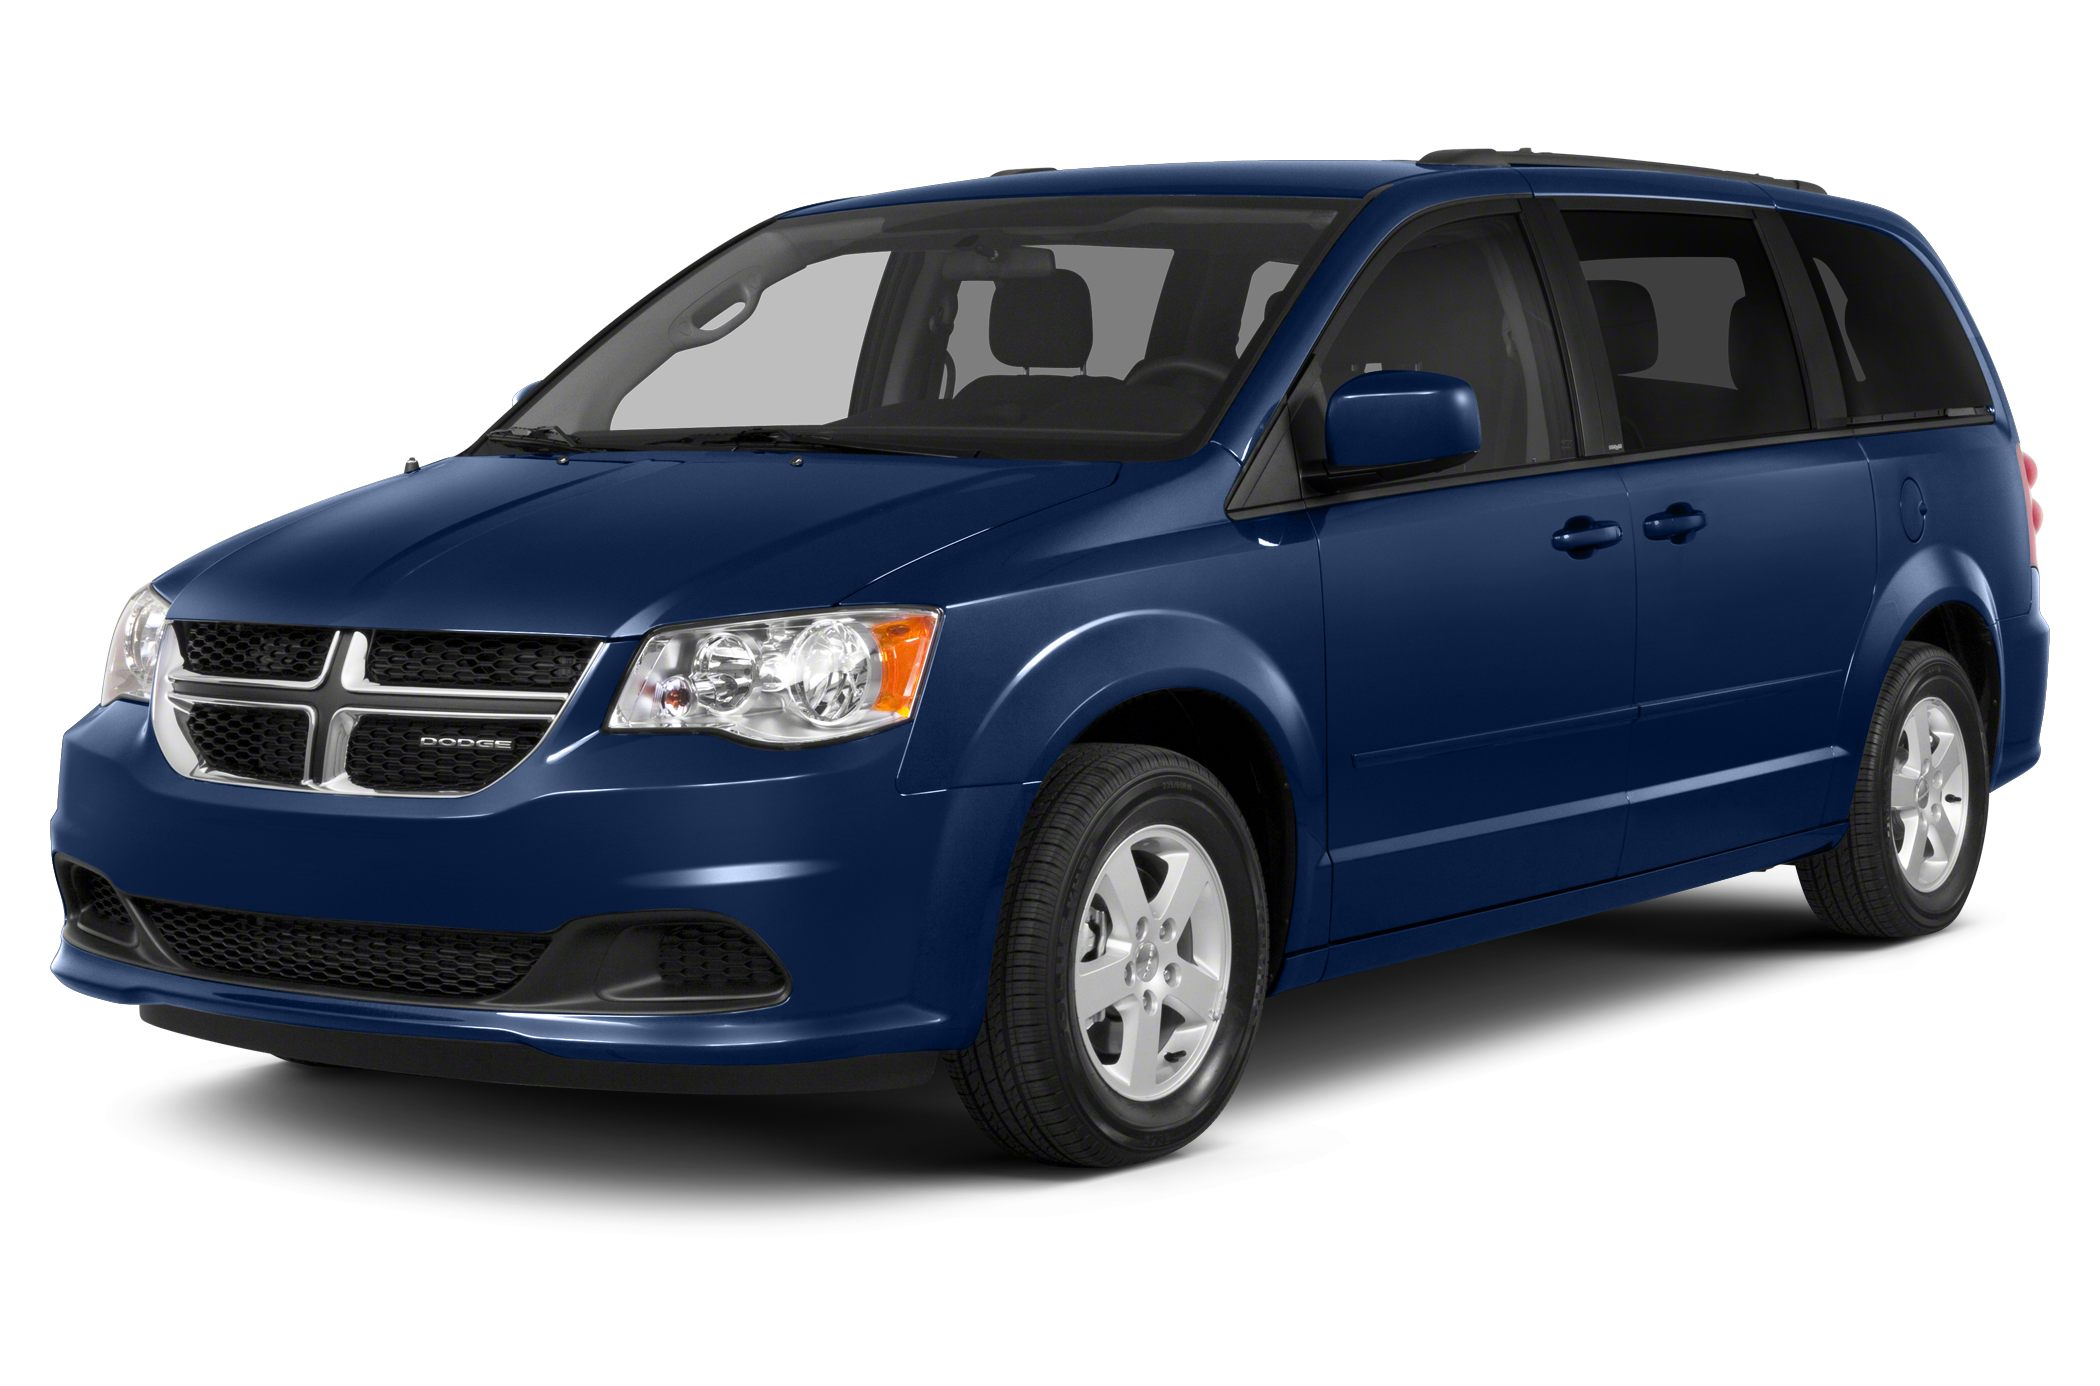 2013 Dodge Grand Caravan SXT Minivan for sale in Sumter for $17,963 with 34,586 miles.